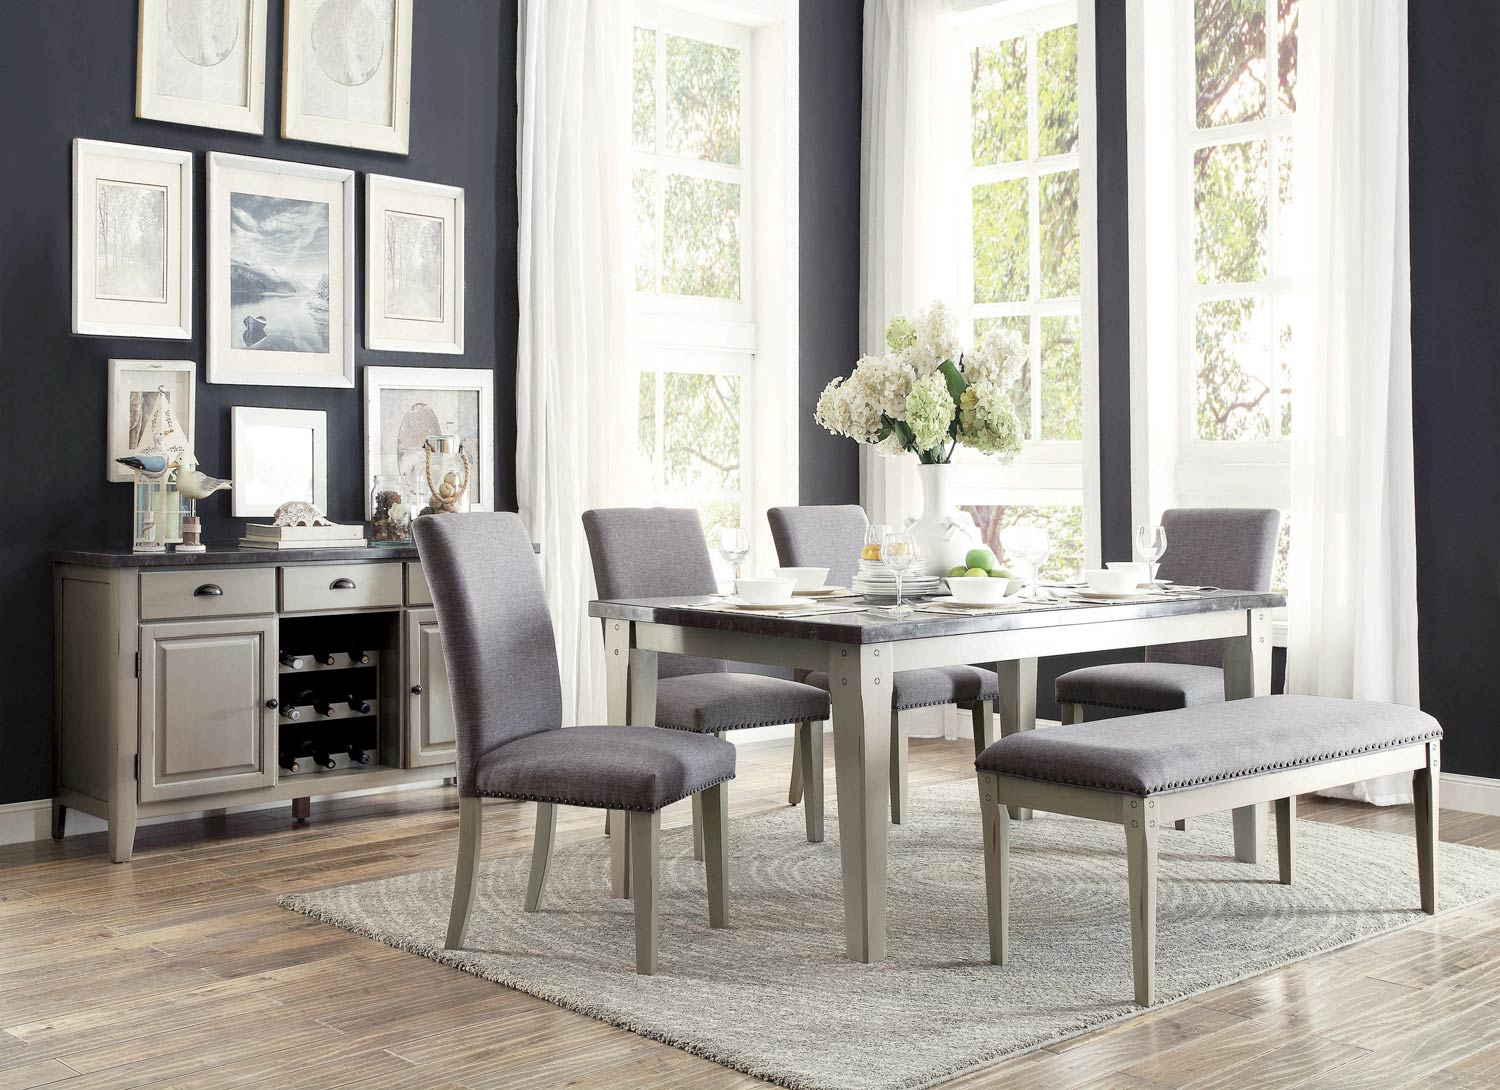 Homelegance Mendel Dining Set - Bluestone Marble Top - Grey